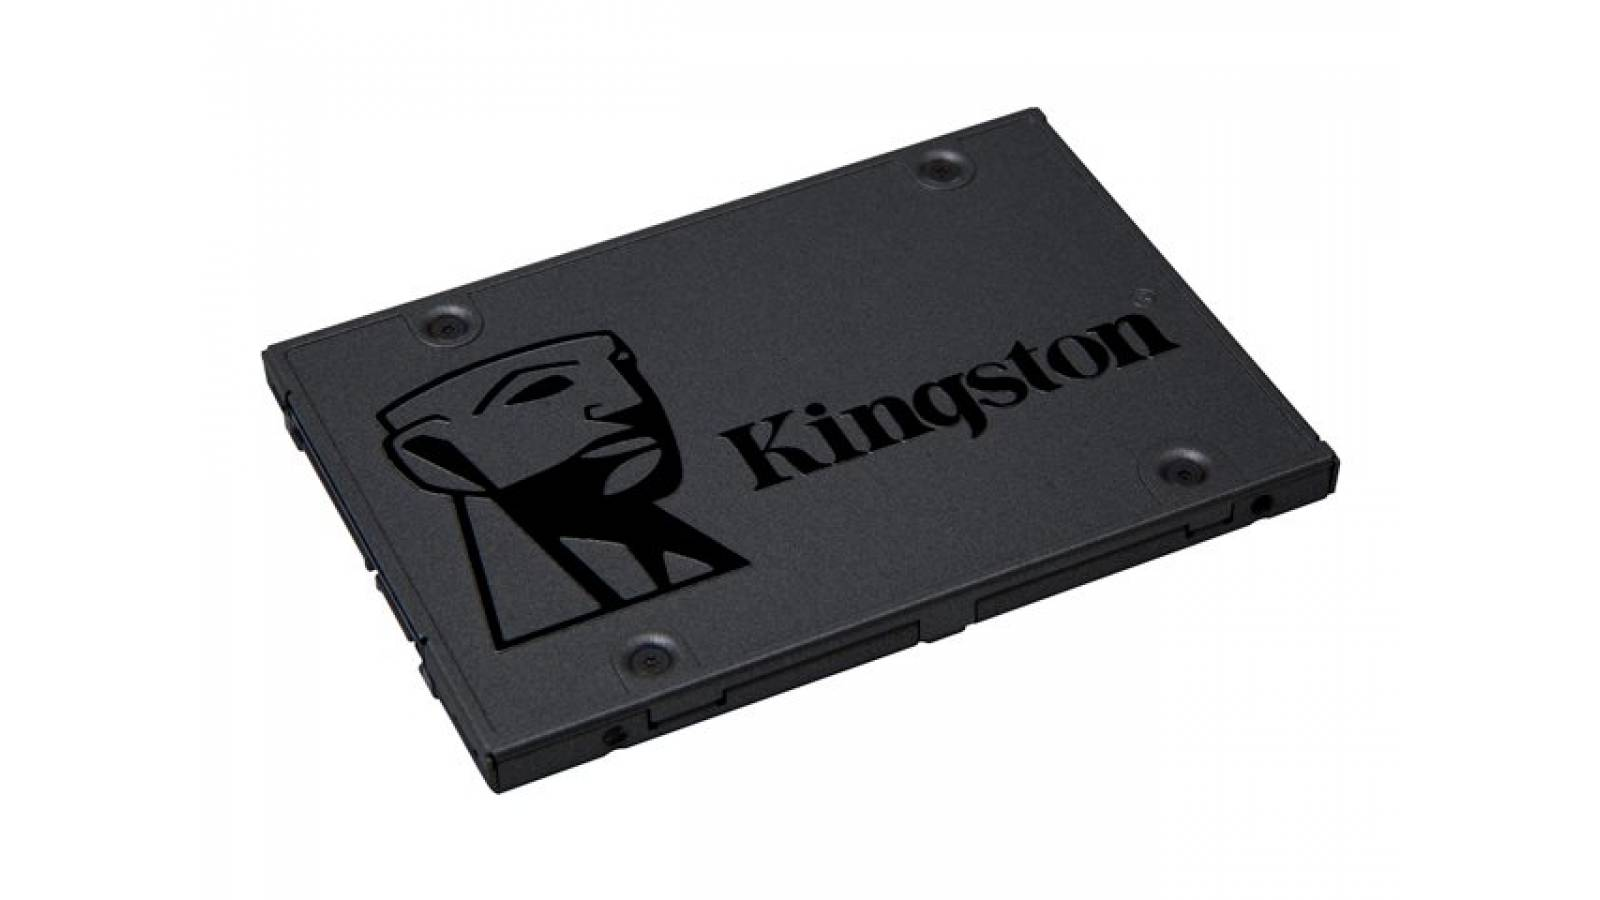 DISCO SOLIDO KINGSTON 480 GB SSDNOW A400 -SA400S37/480G